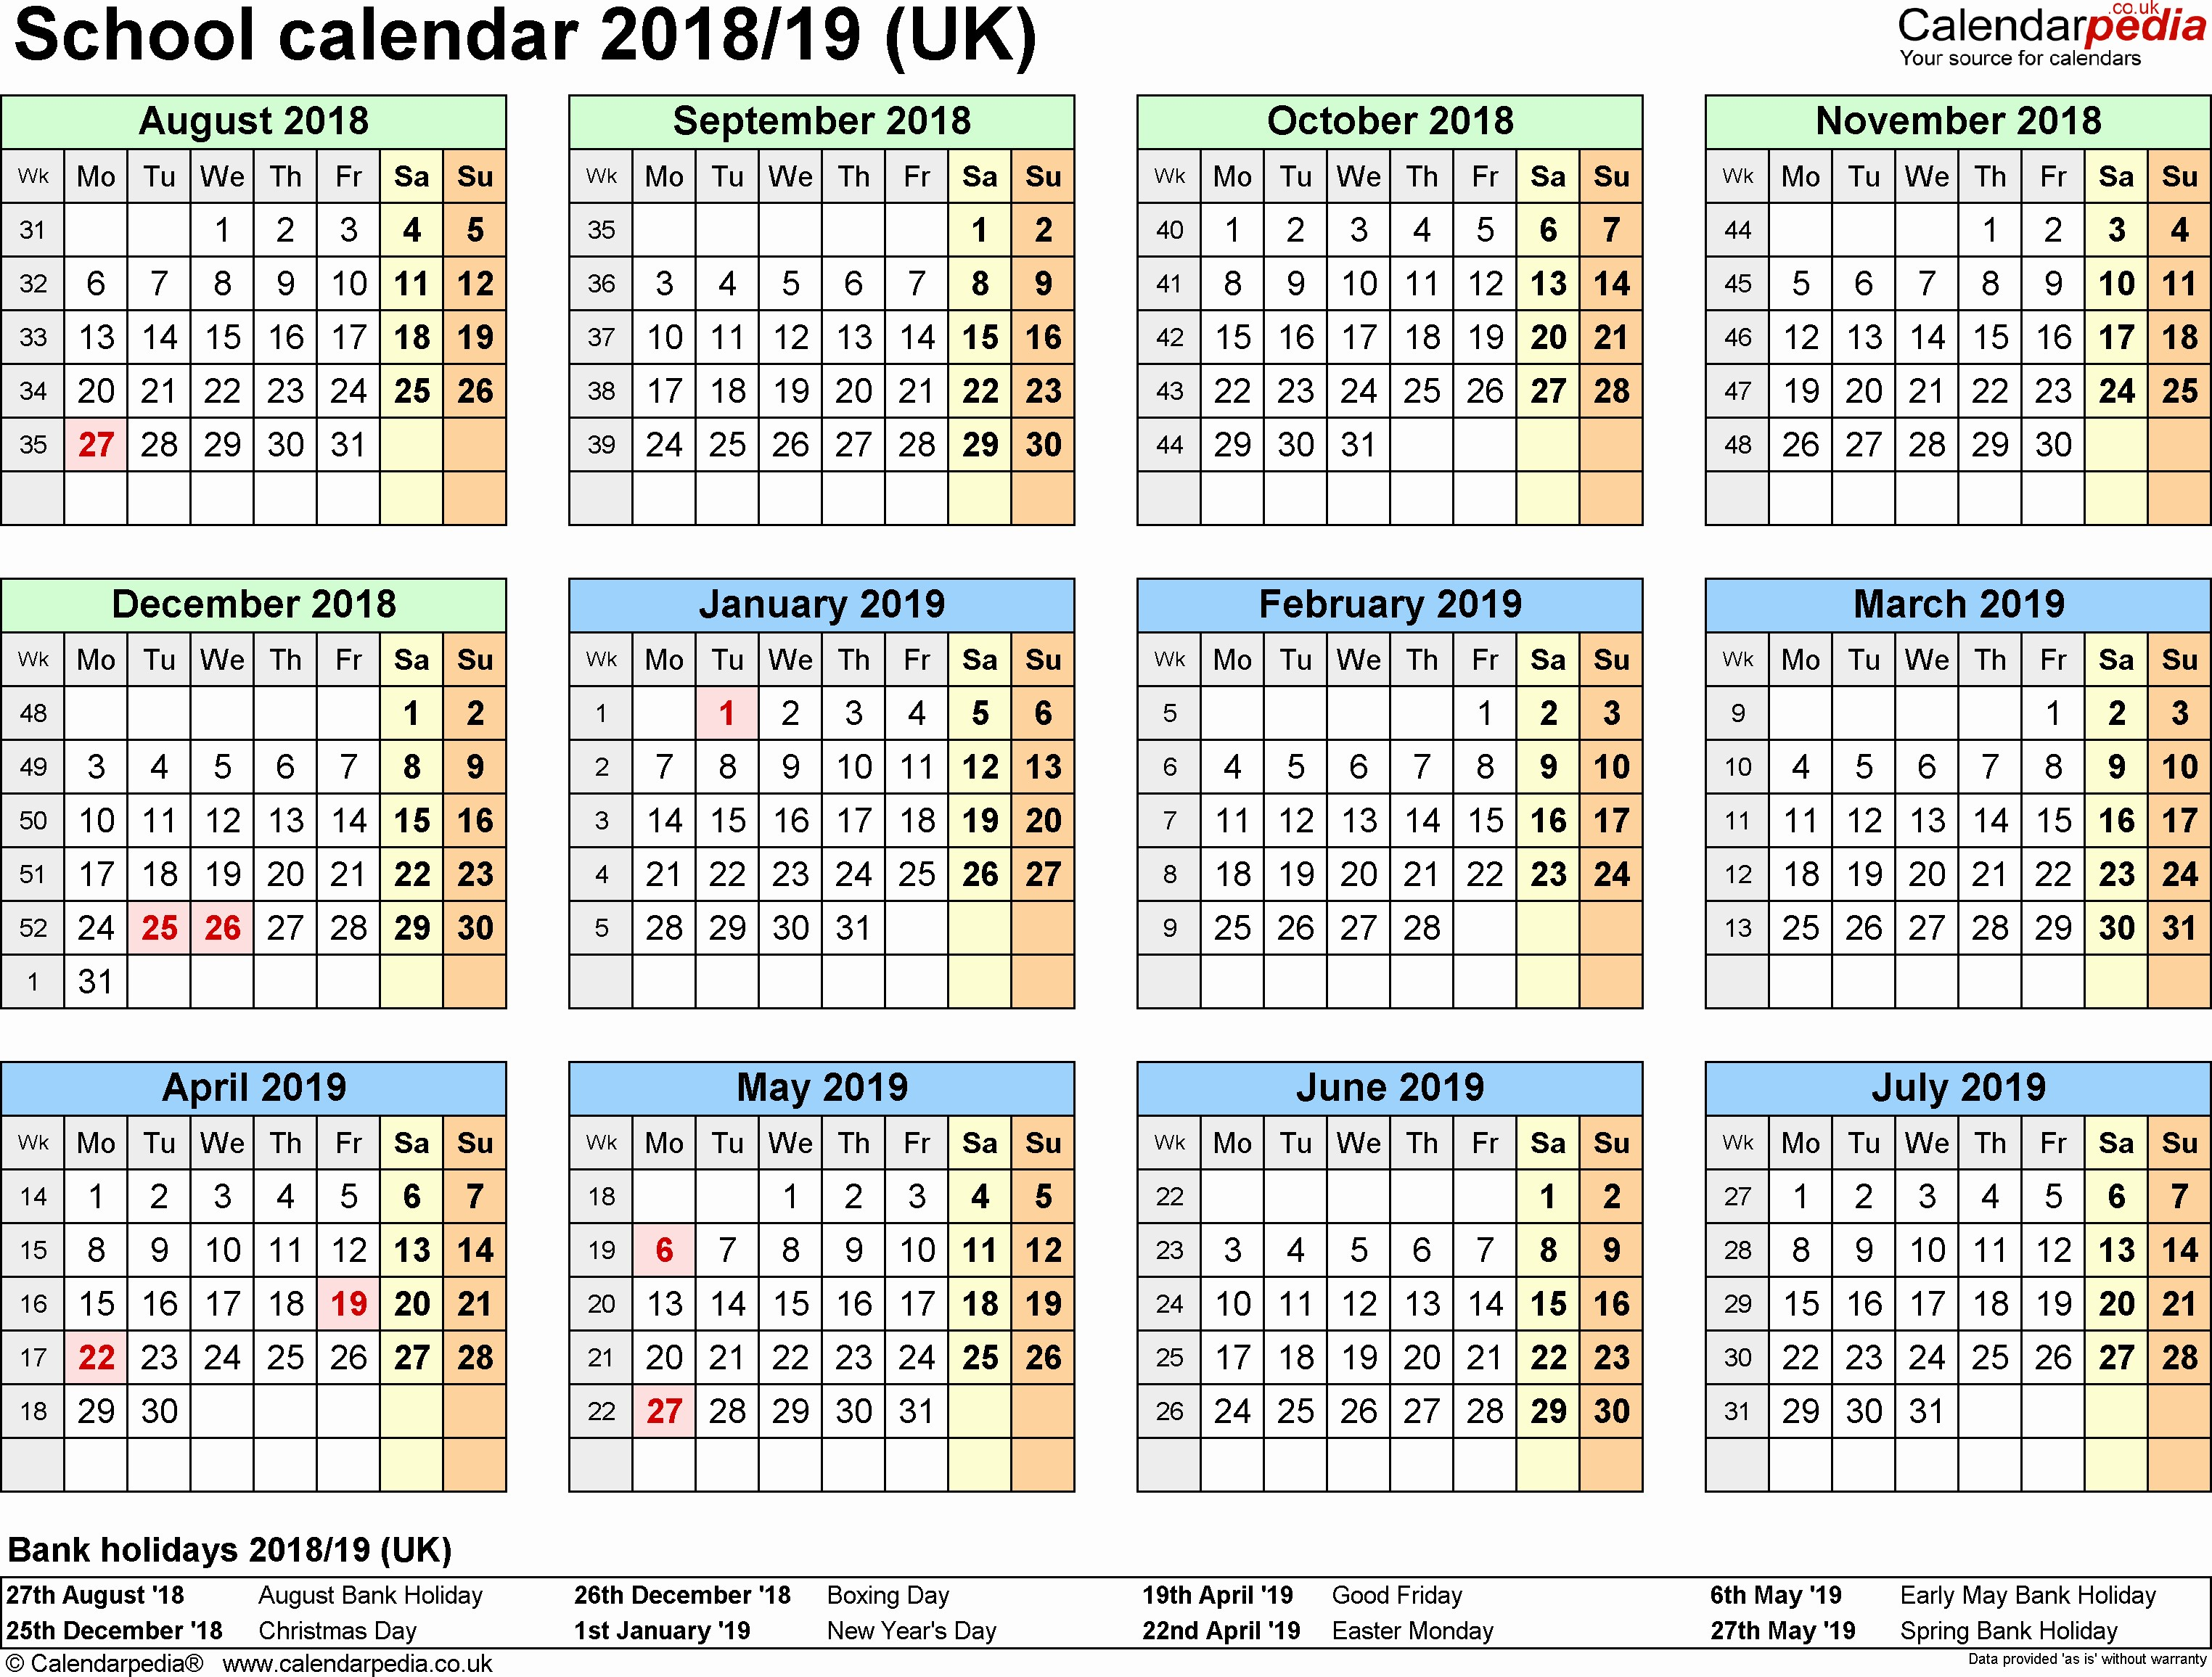 March Holiday Calendar 2019 Más Populares Printable Calendar for 2018 2019 March 2019 Calendar with Holidays Of March Holiday Calendar 2019 Mejores Y Más Novedosos March 2019 Calendar Printable with Holidays